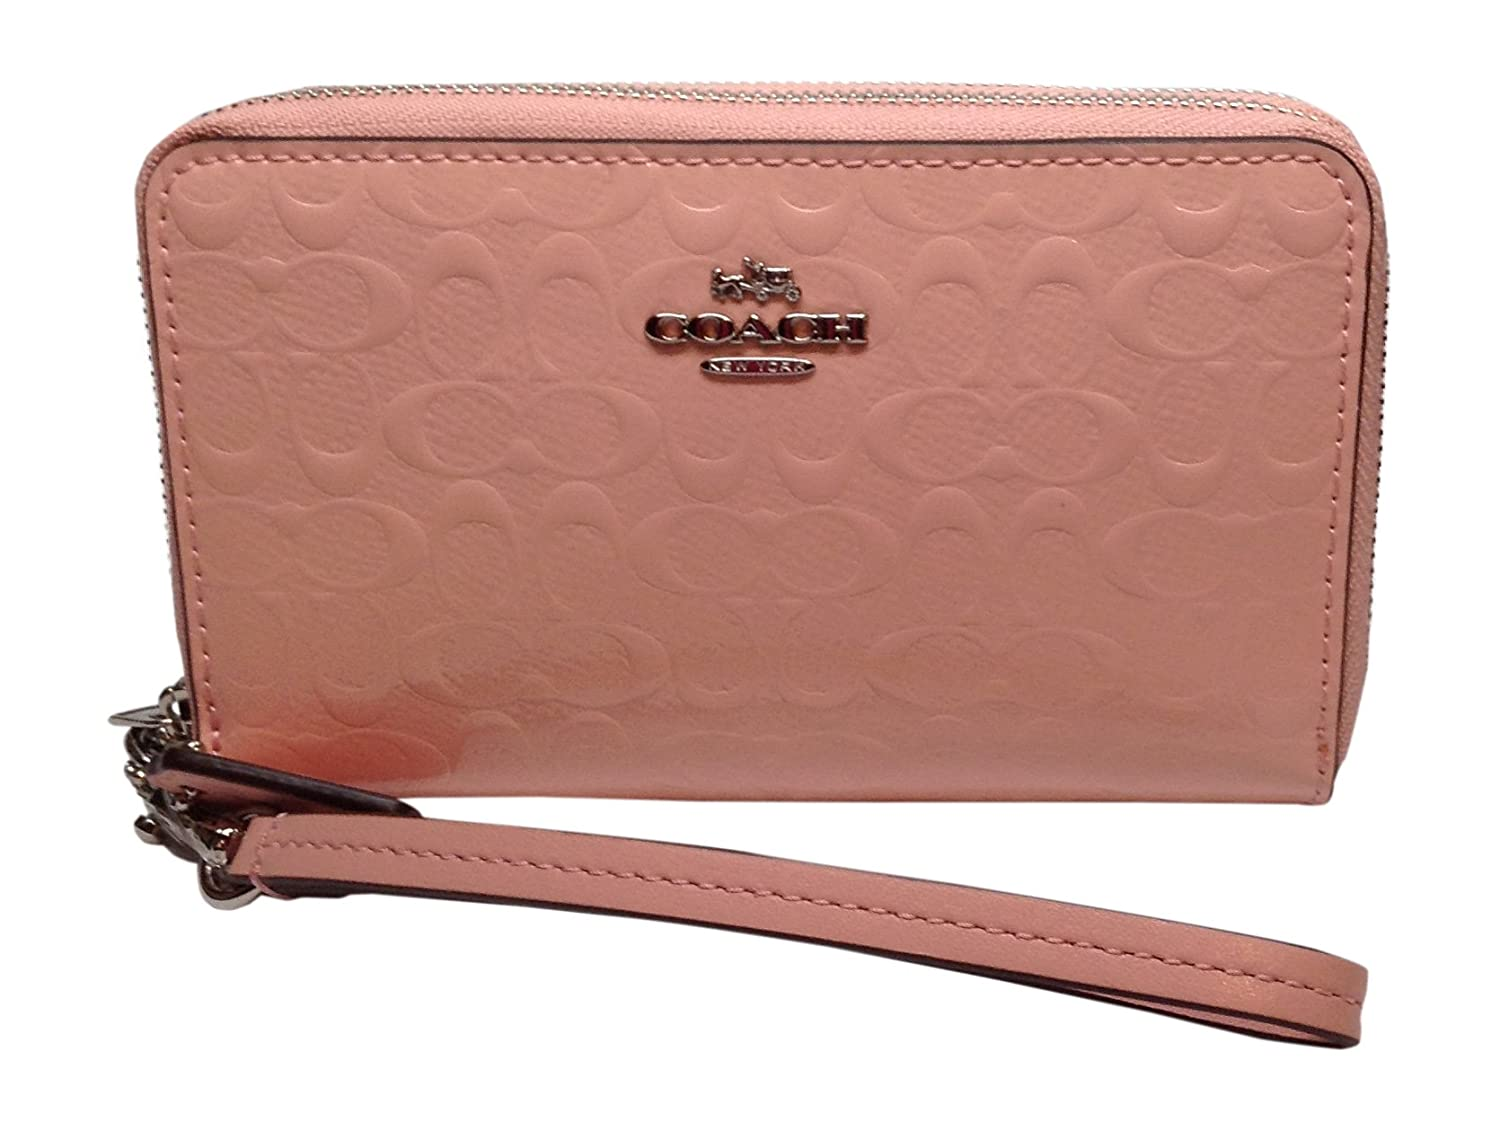 Coach Signature Double Zip Wallet Debossed Patent Leather Pink Blush 53310